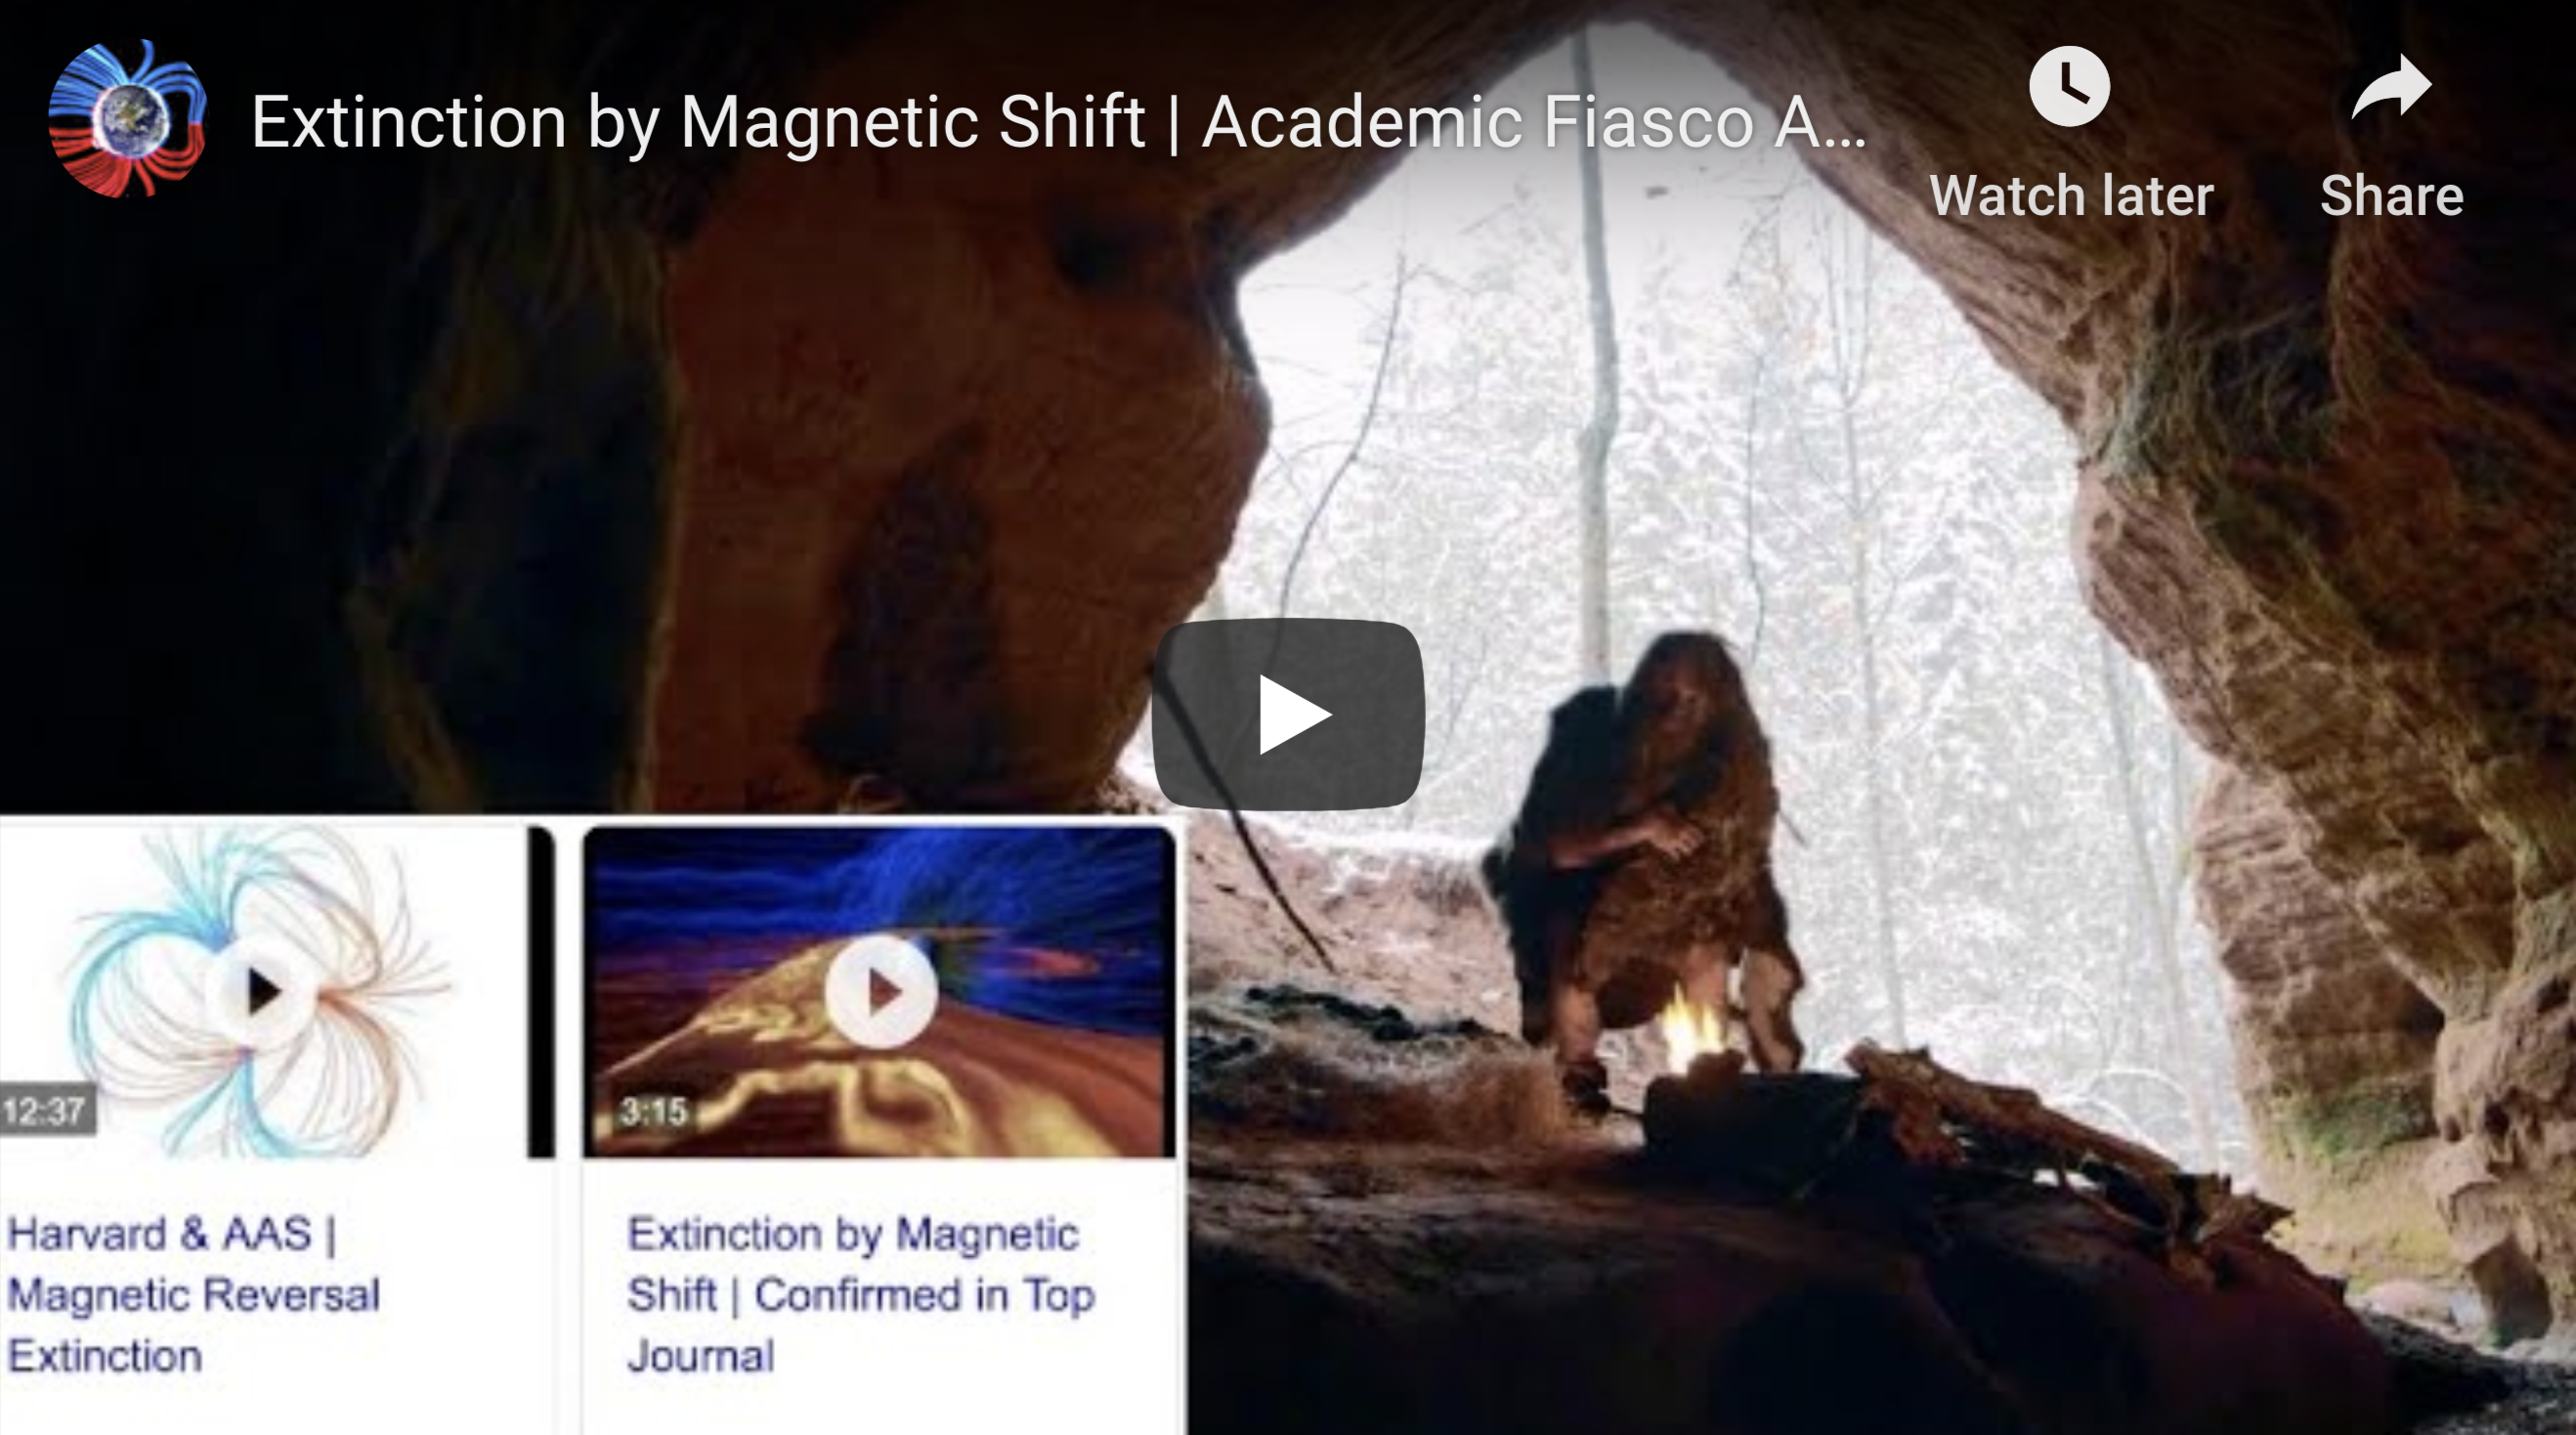 Extinction by Magnetic Shift Academic Fiasco Again EXZM Suspicious Observers post July 11th 2020